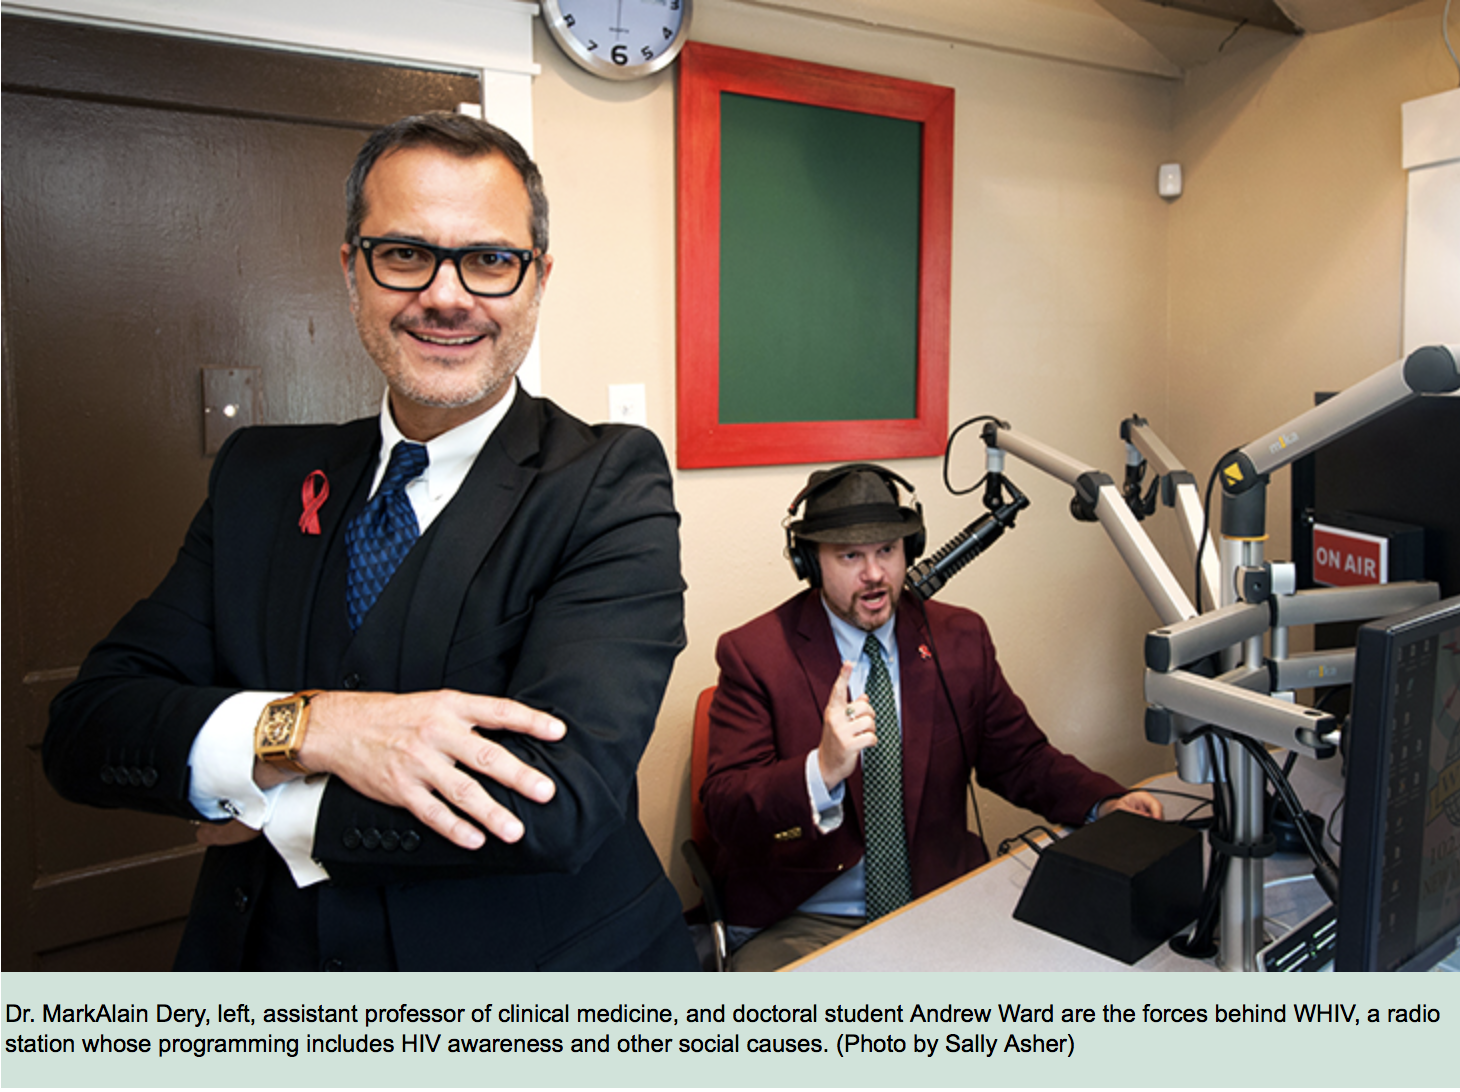 """Making airwaves for social justice - Dr. Dery, assistant professor of medicine at Tulane, called the station WHIV because he wanted the letters repeated over and over to destigmatize HIV and build awareness of the disease. But HIV awareness is only part of the station's story.""""Contemporary radio is corporate radio,"""" says Dery. """"… Community radio 'for the community, by the community' is a concept that has been replaced with just a few voices that continue to support the power structure. WHIV is committed to providing programming dedicated to human rights and social justice.""""Full Article HERE"""